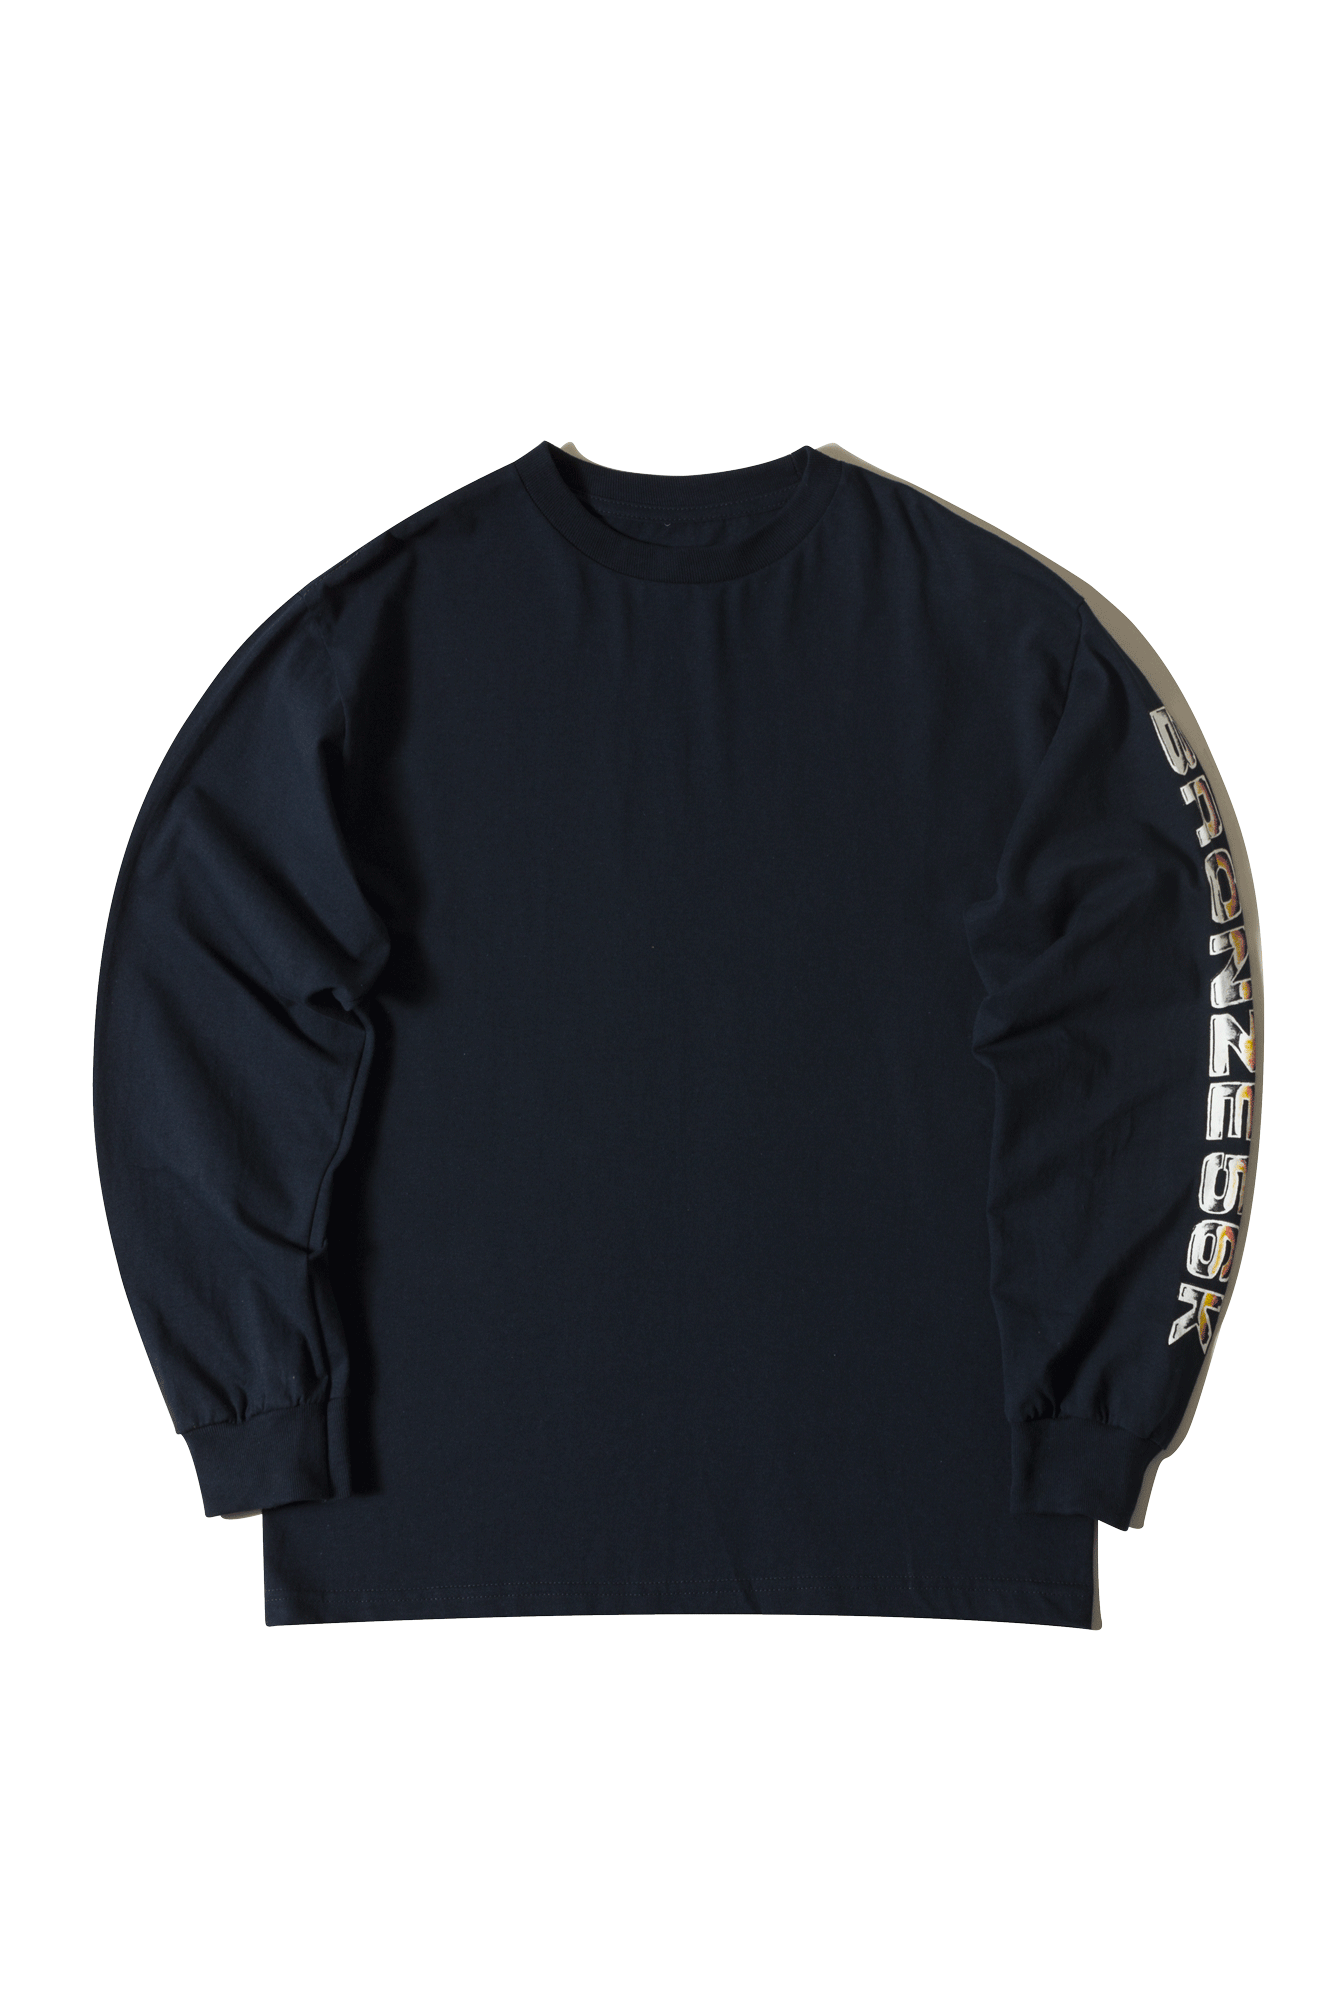 Bronze 56K Magliette a manica lunga LS T-shirt Shoulder lean Blu SHOULDERLE#000#NAVY#M - One Block Down